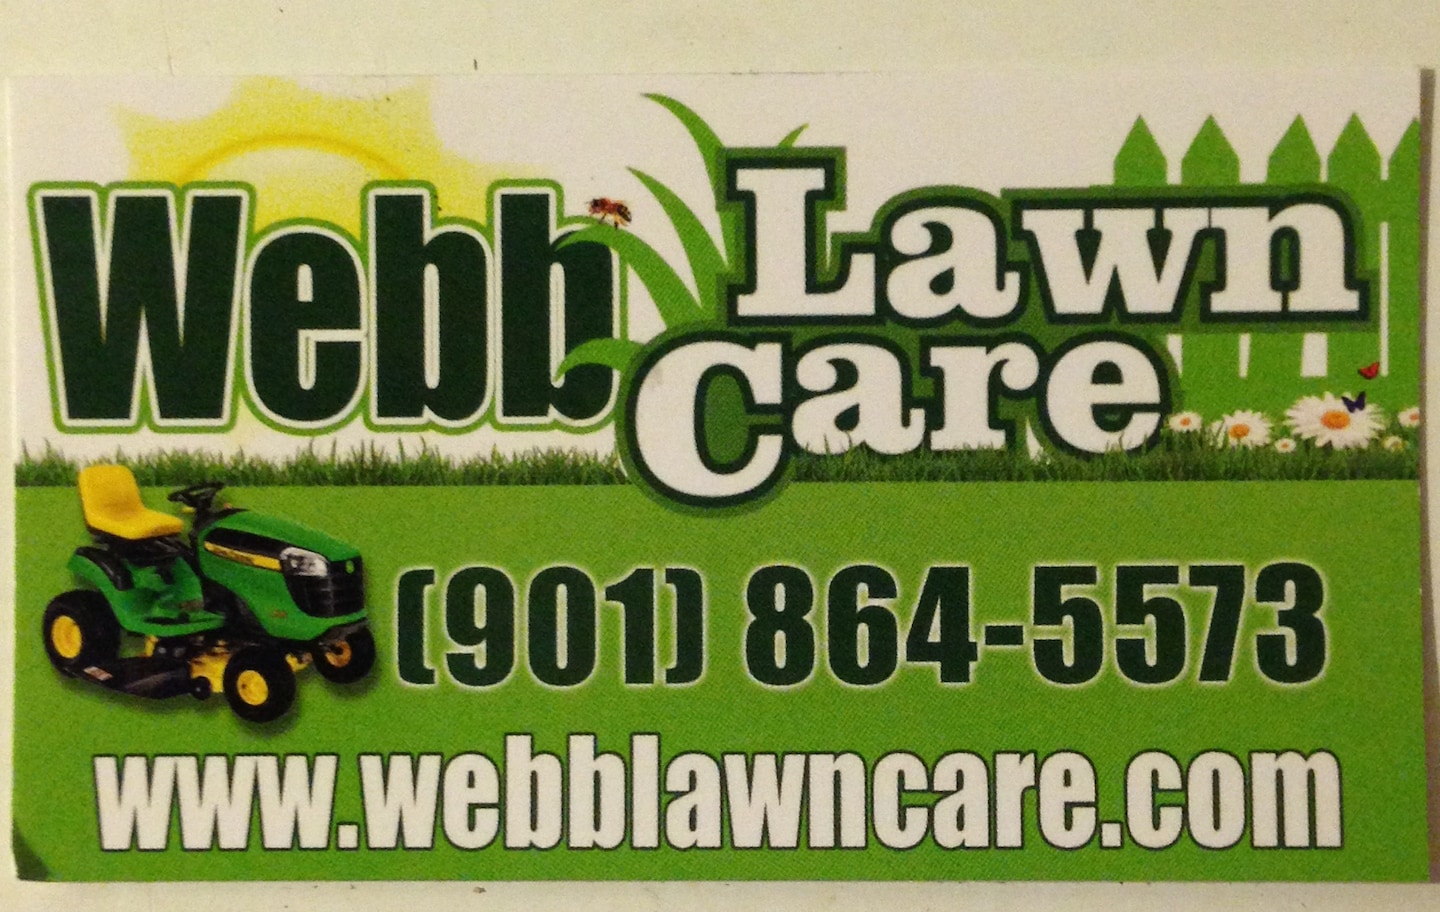 Webb Family Lawn Care